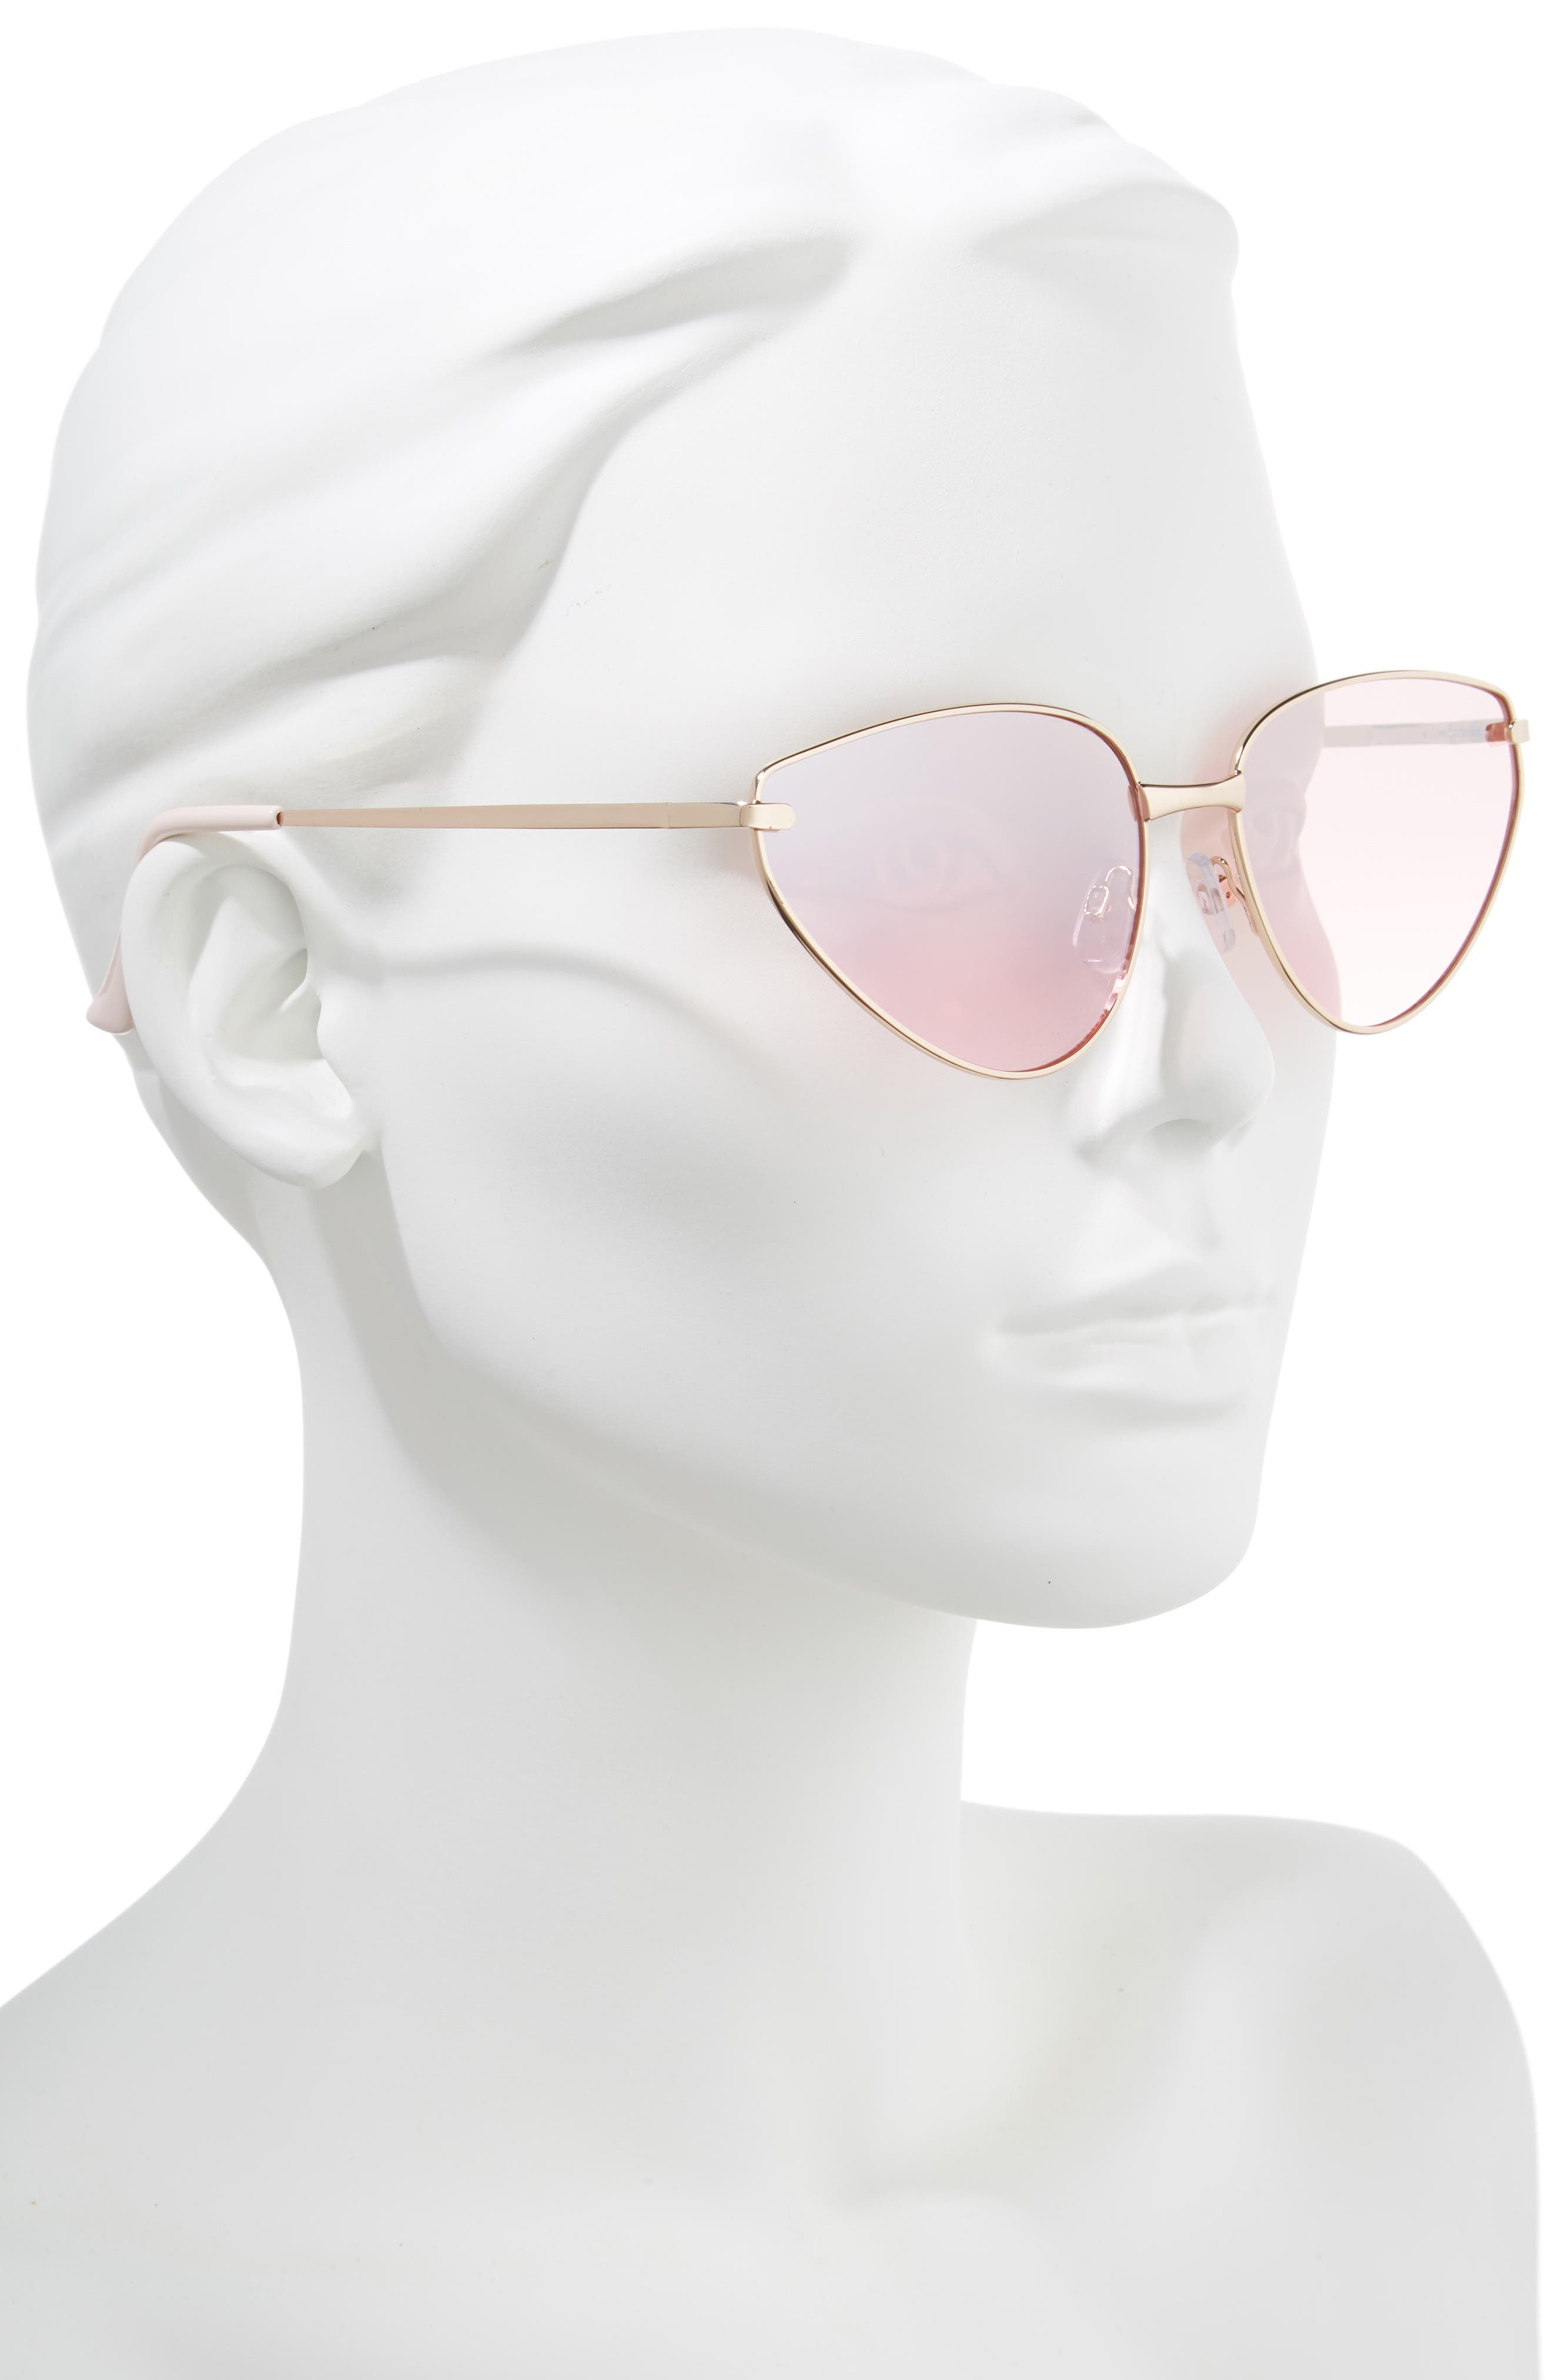 60mm Exaggerated Cat Eye Sunglasses,                             Alternate thumbnail 2, color,                             710